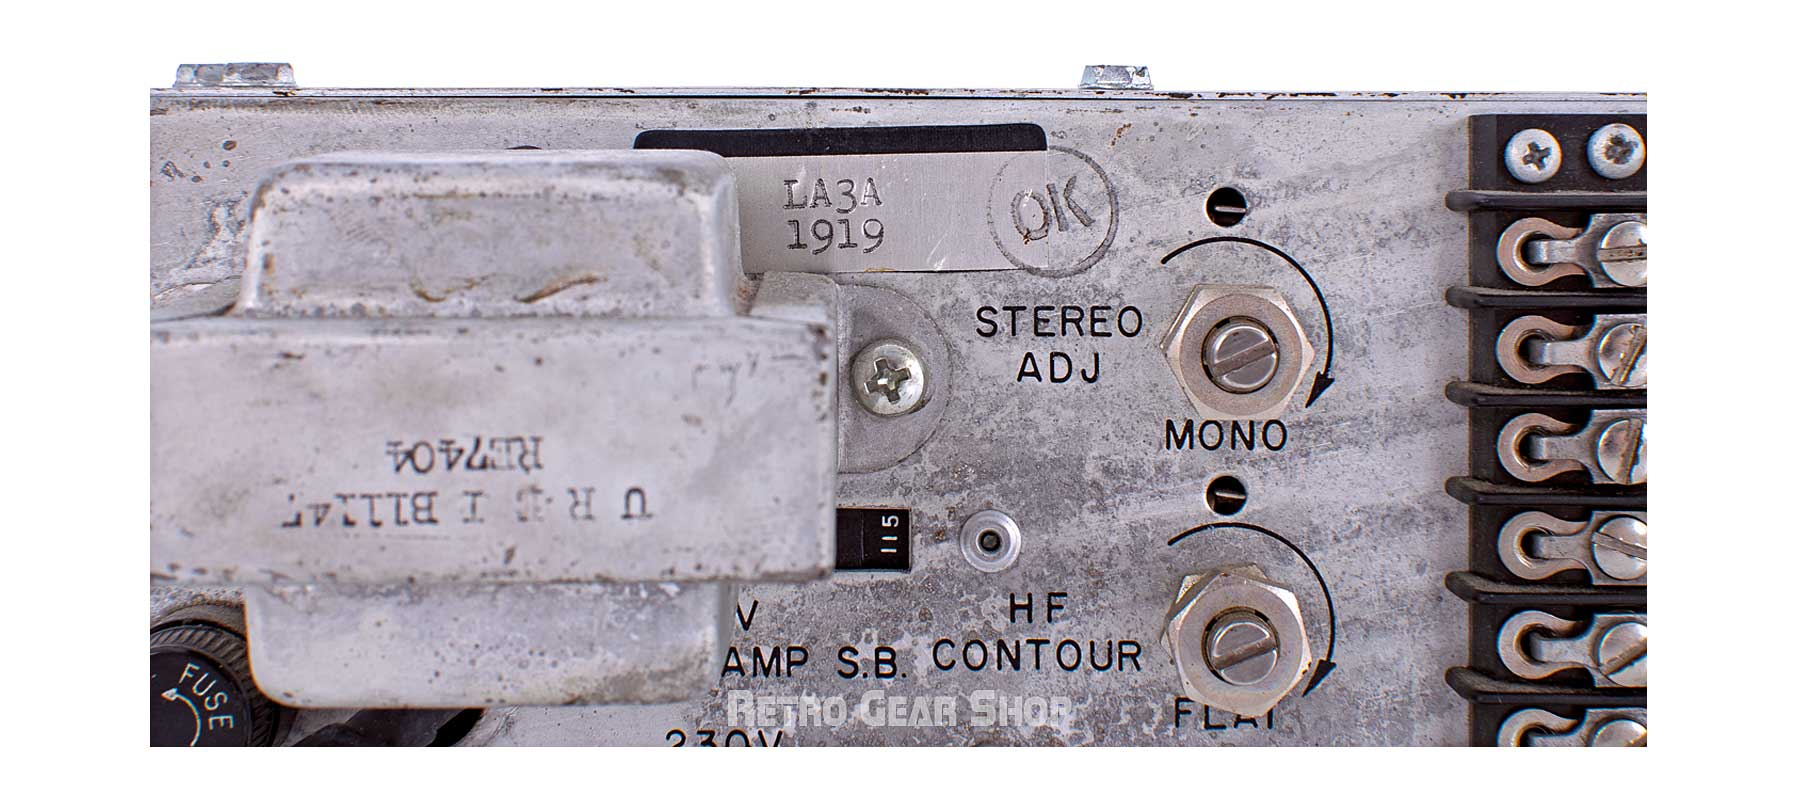 Urei LA-3A Stereo Pair Serial Number 1919